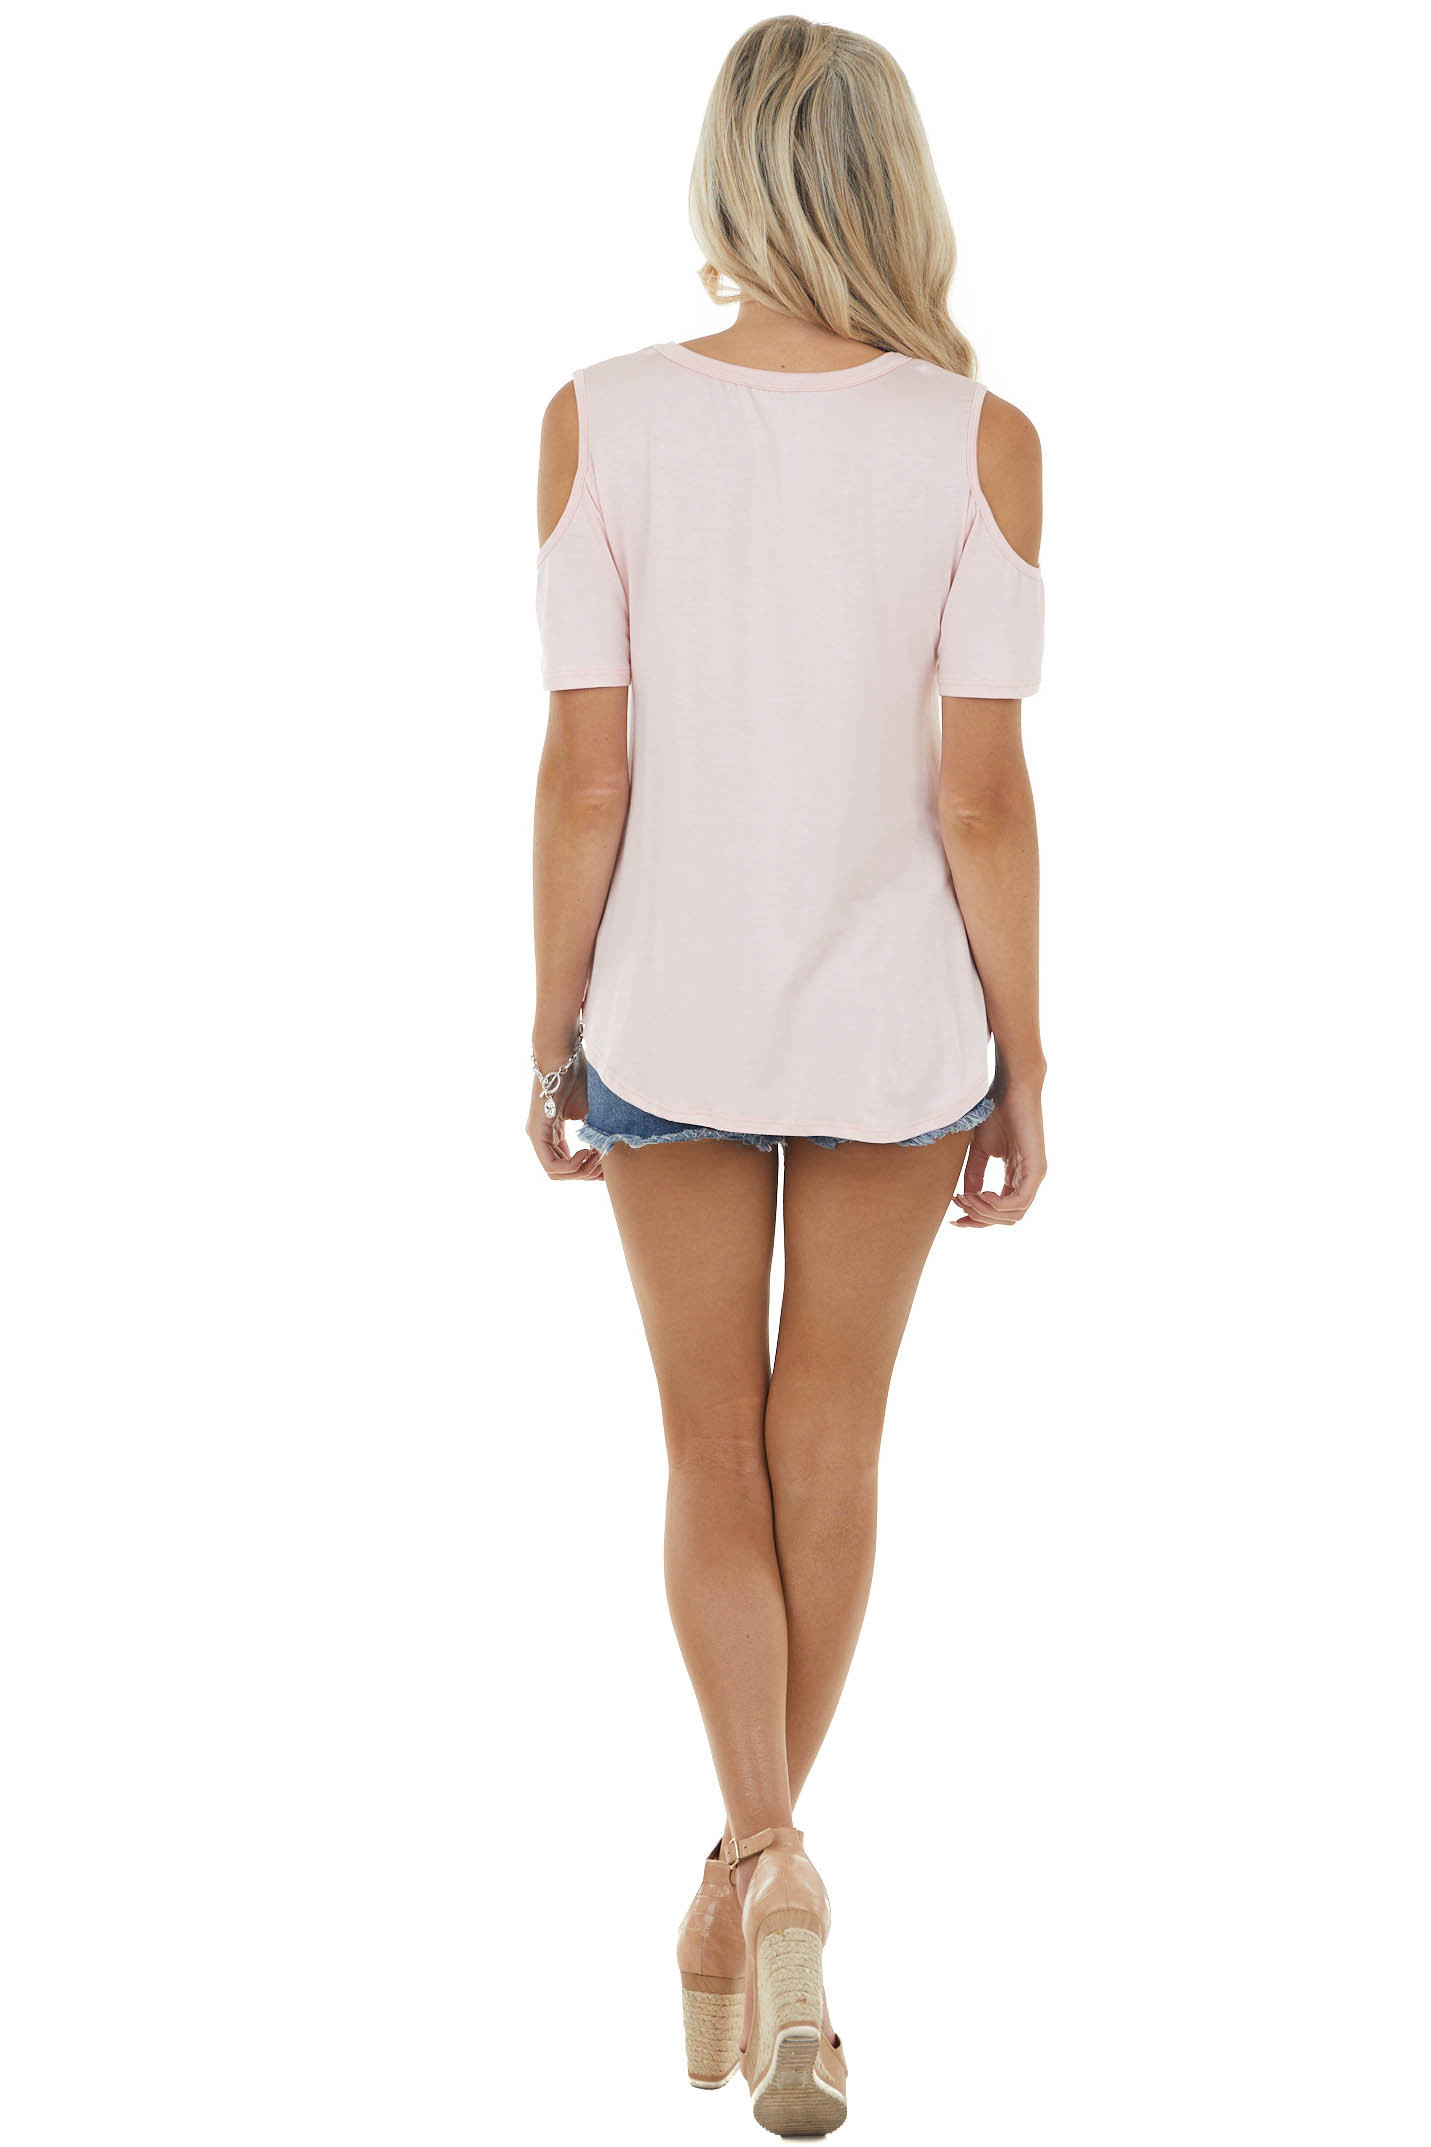 Blush Short Sleeve Knit Top with Front Tie Detail